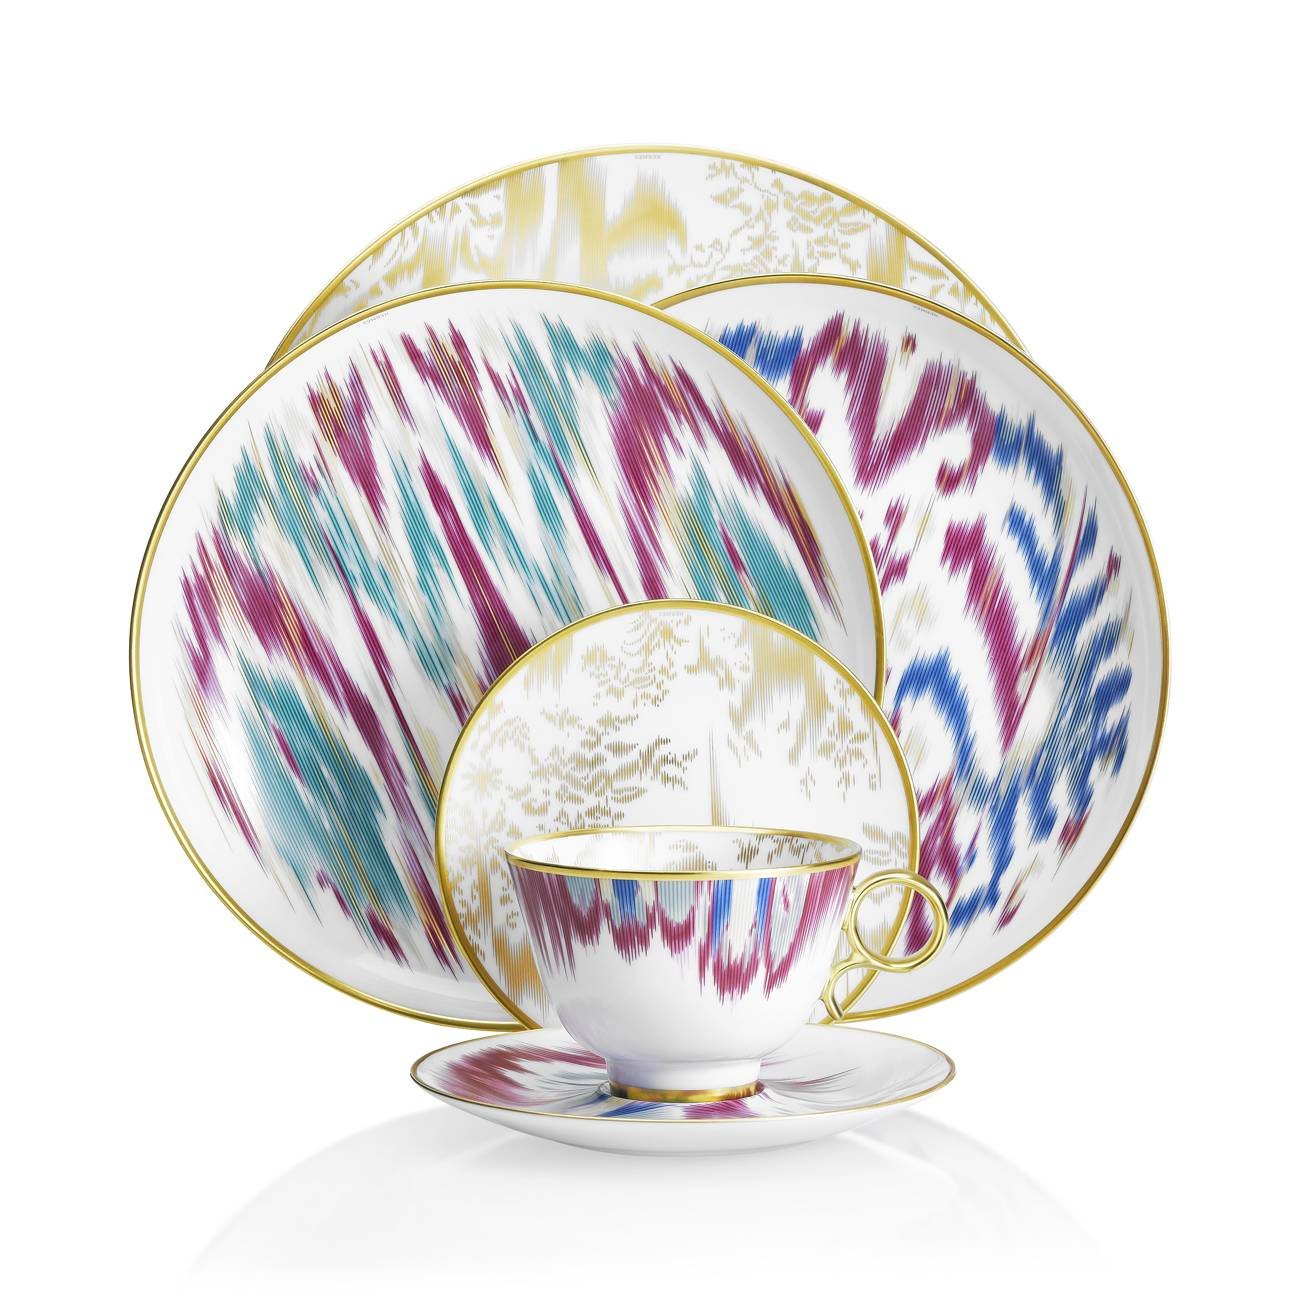 high-end high-end Hermès High-End Tableware Herm  s Tableware 7